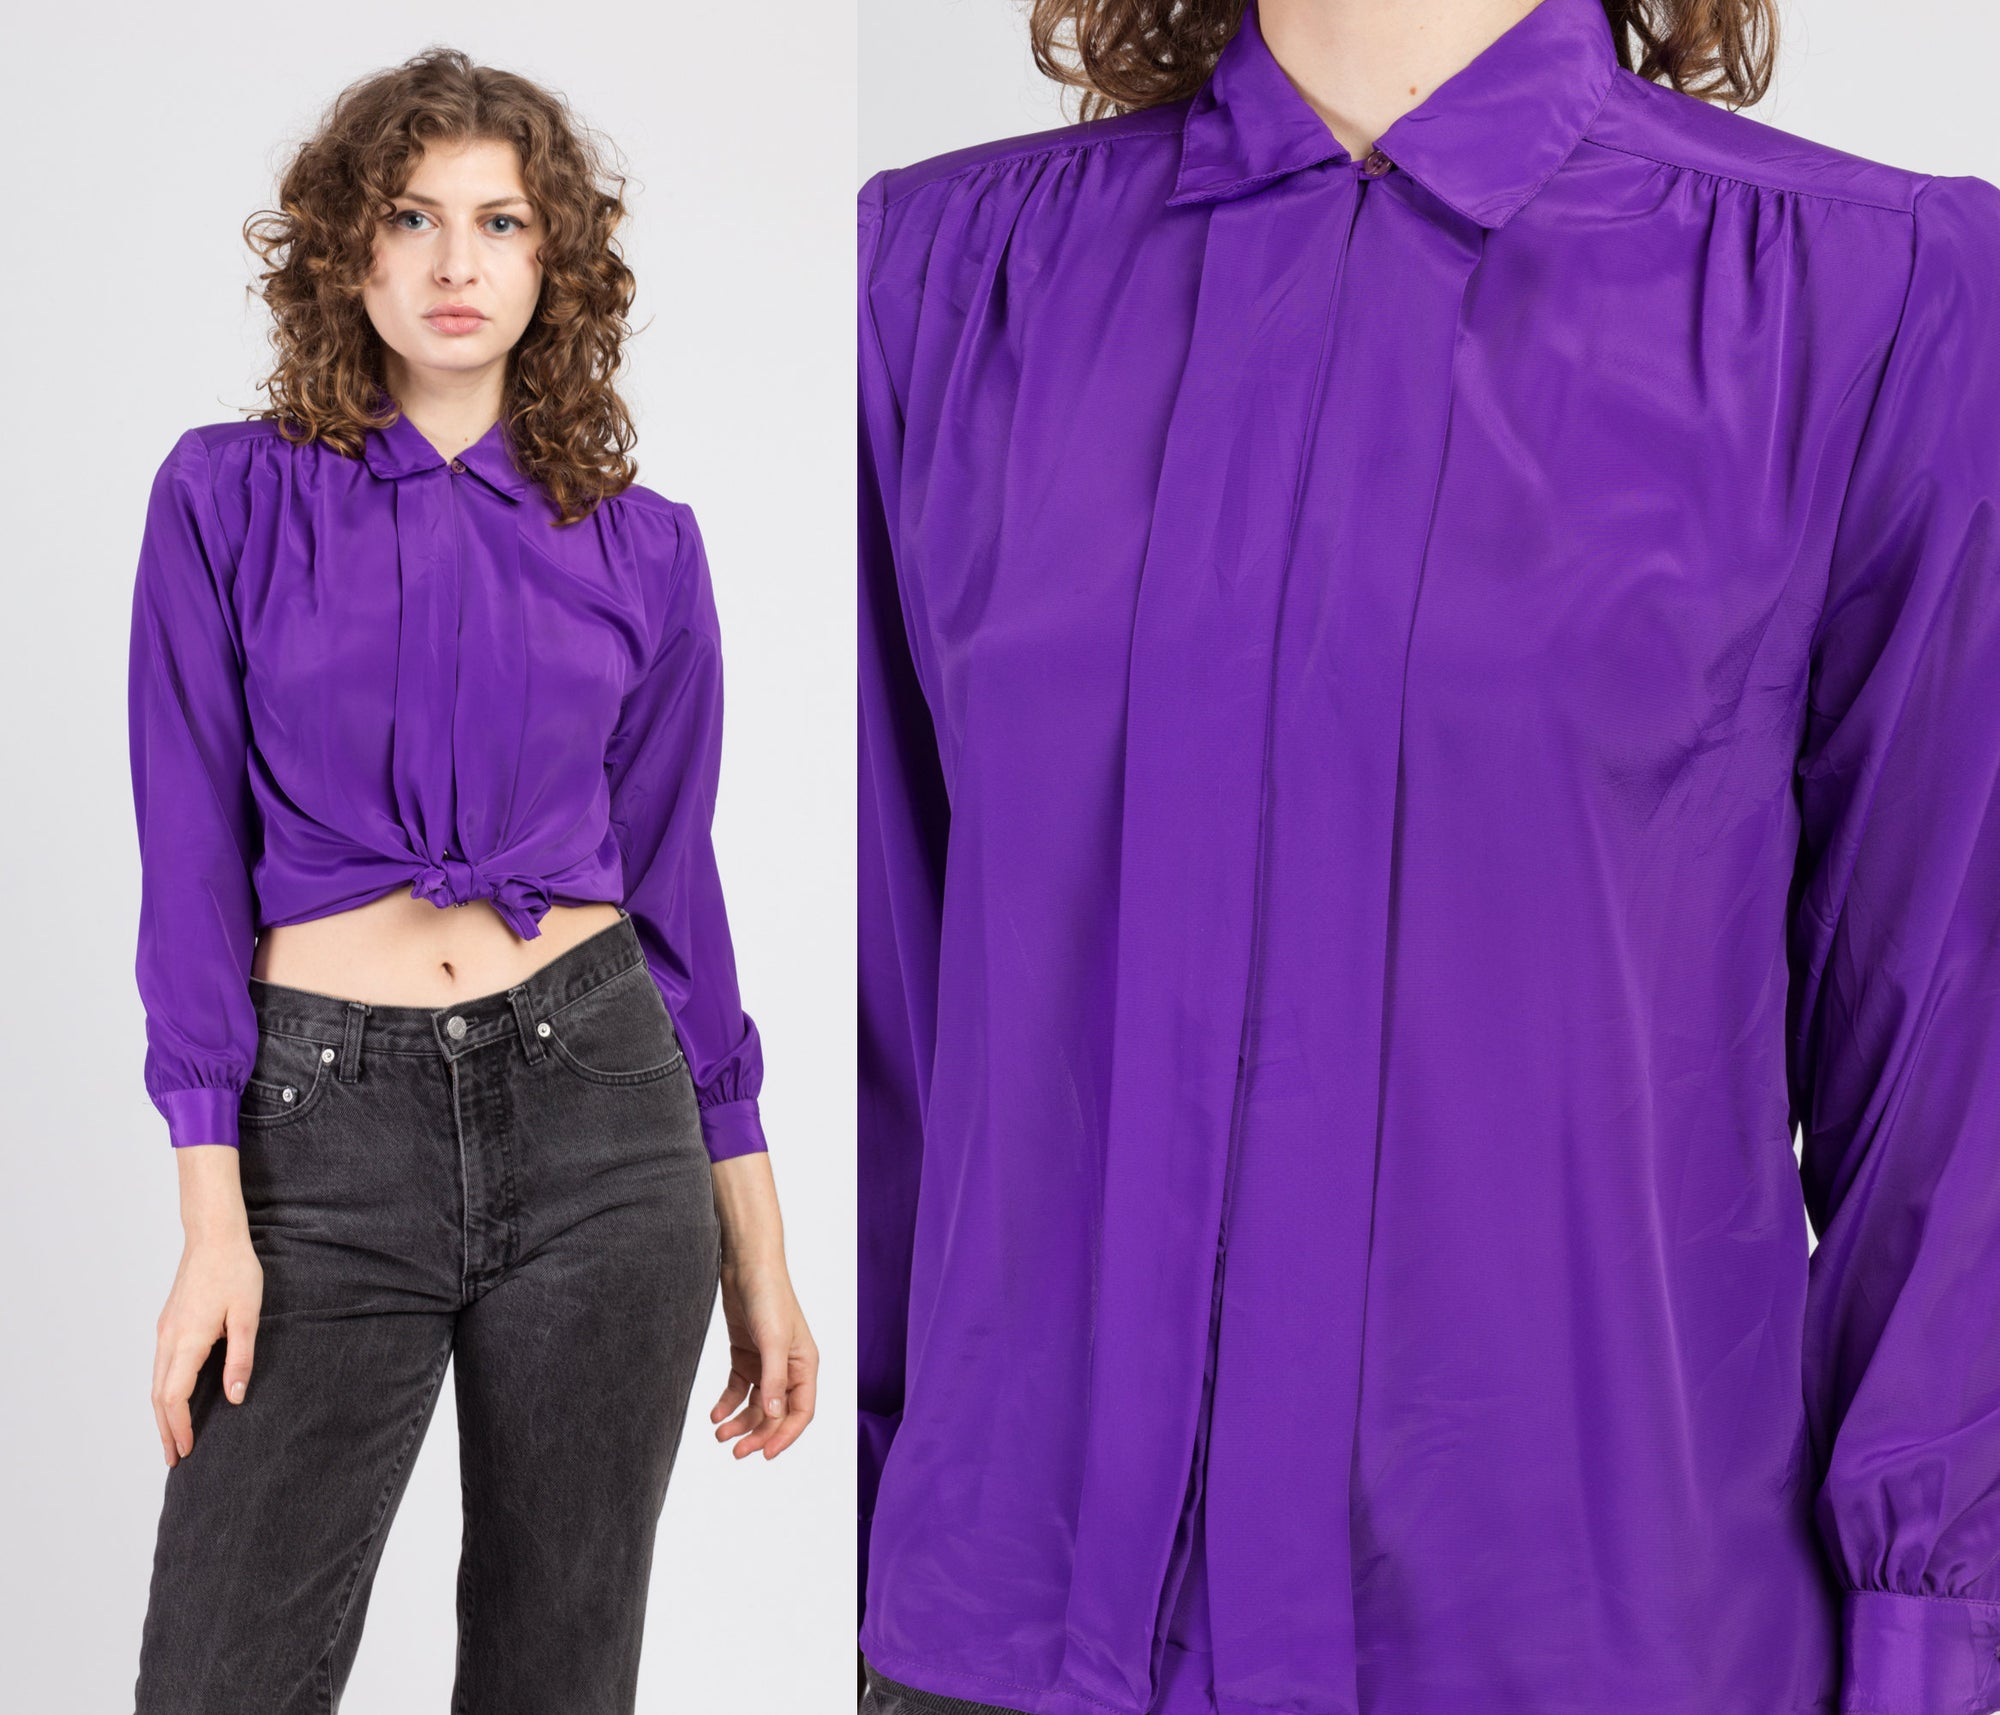 80s Purple Pleated Blouse - Petite Small